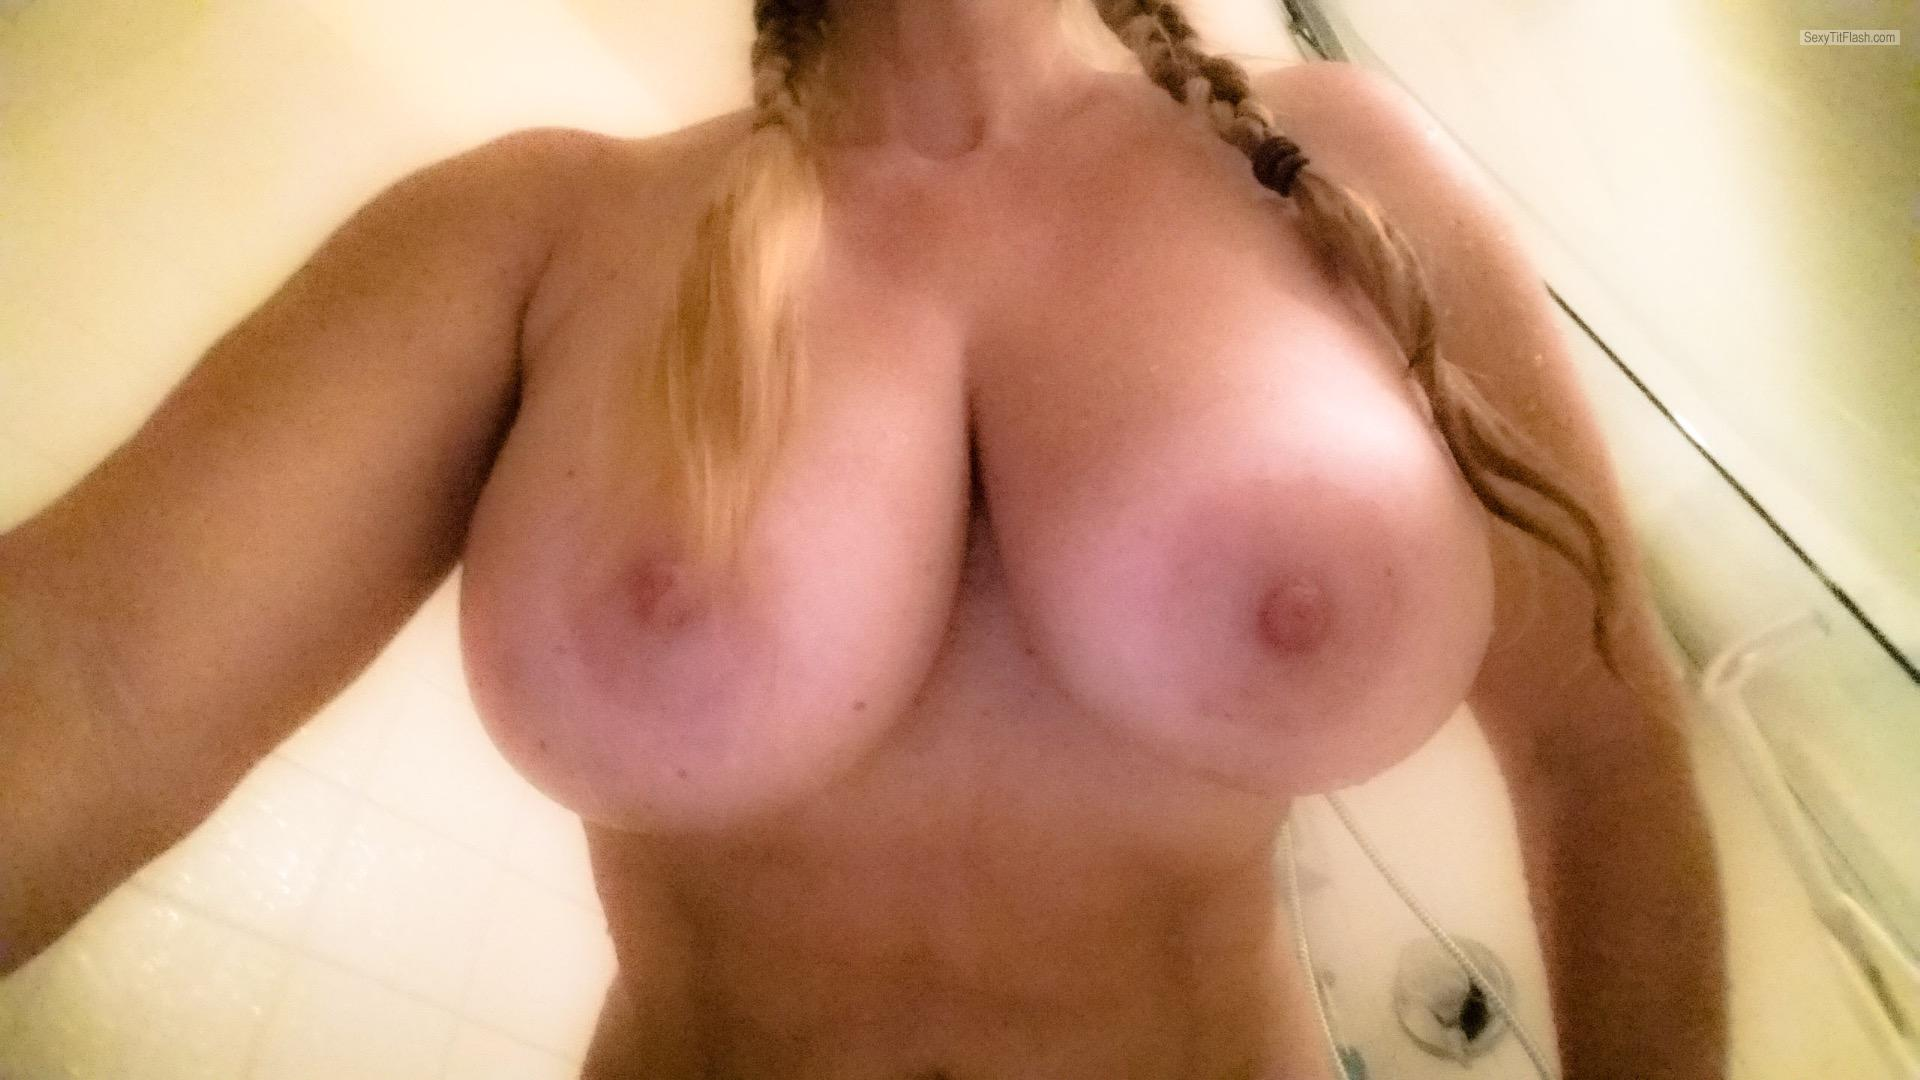 Extremely big Tits Of My Girlfriend Selfie by Gf 38ffs